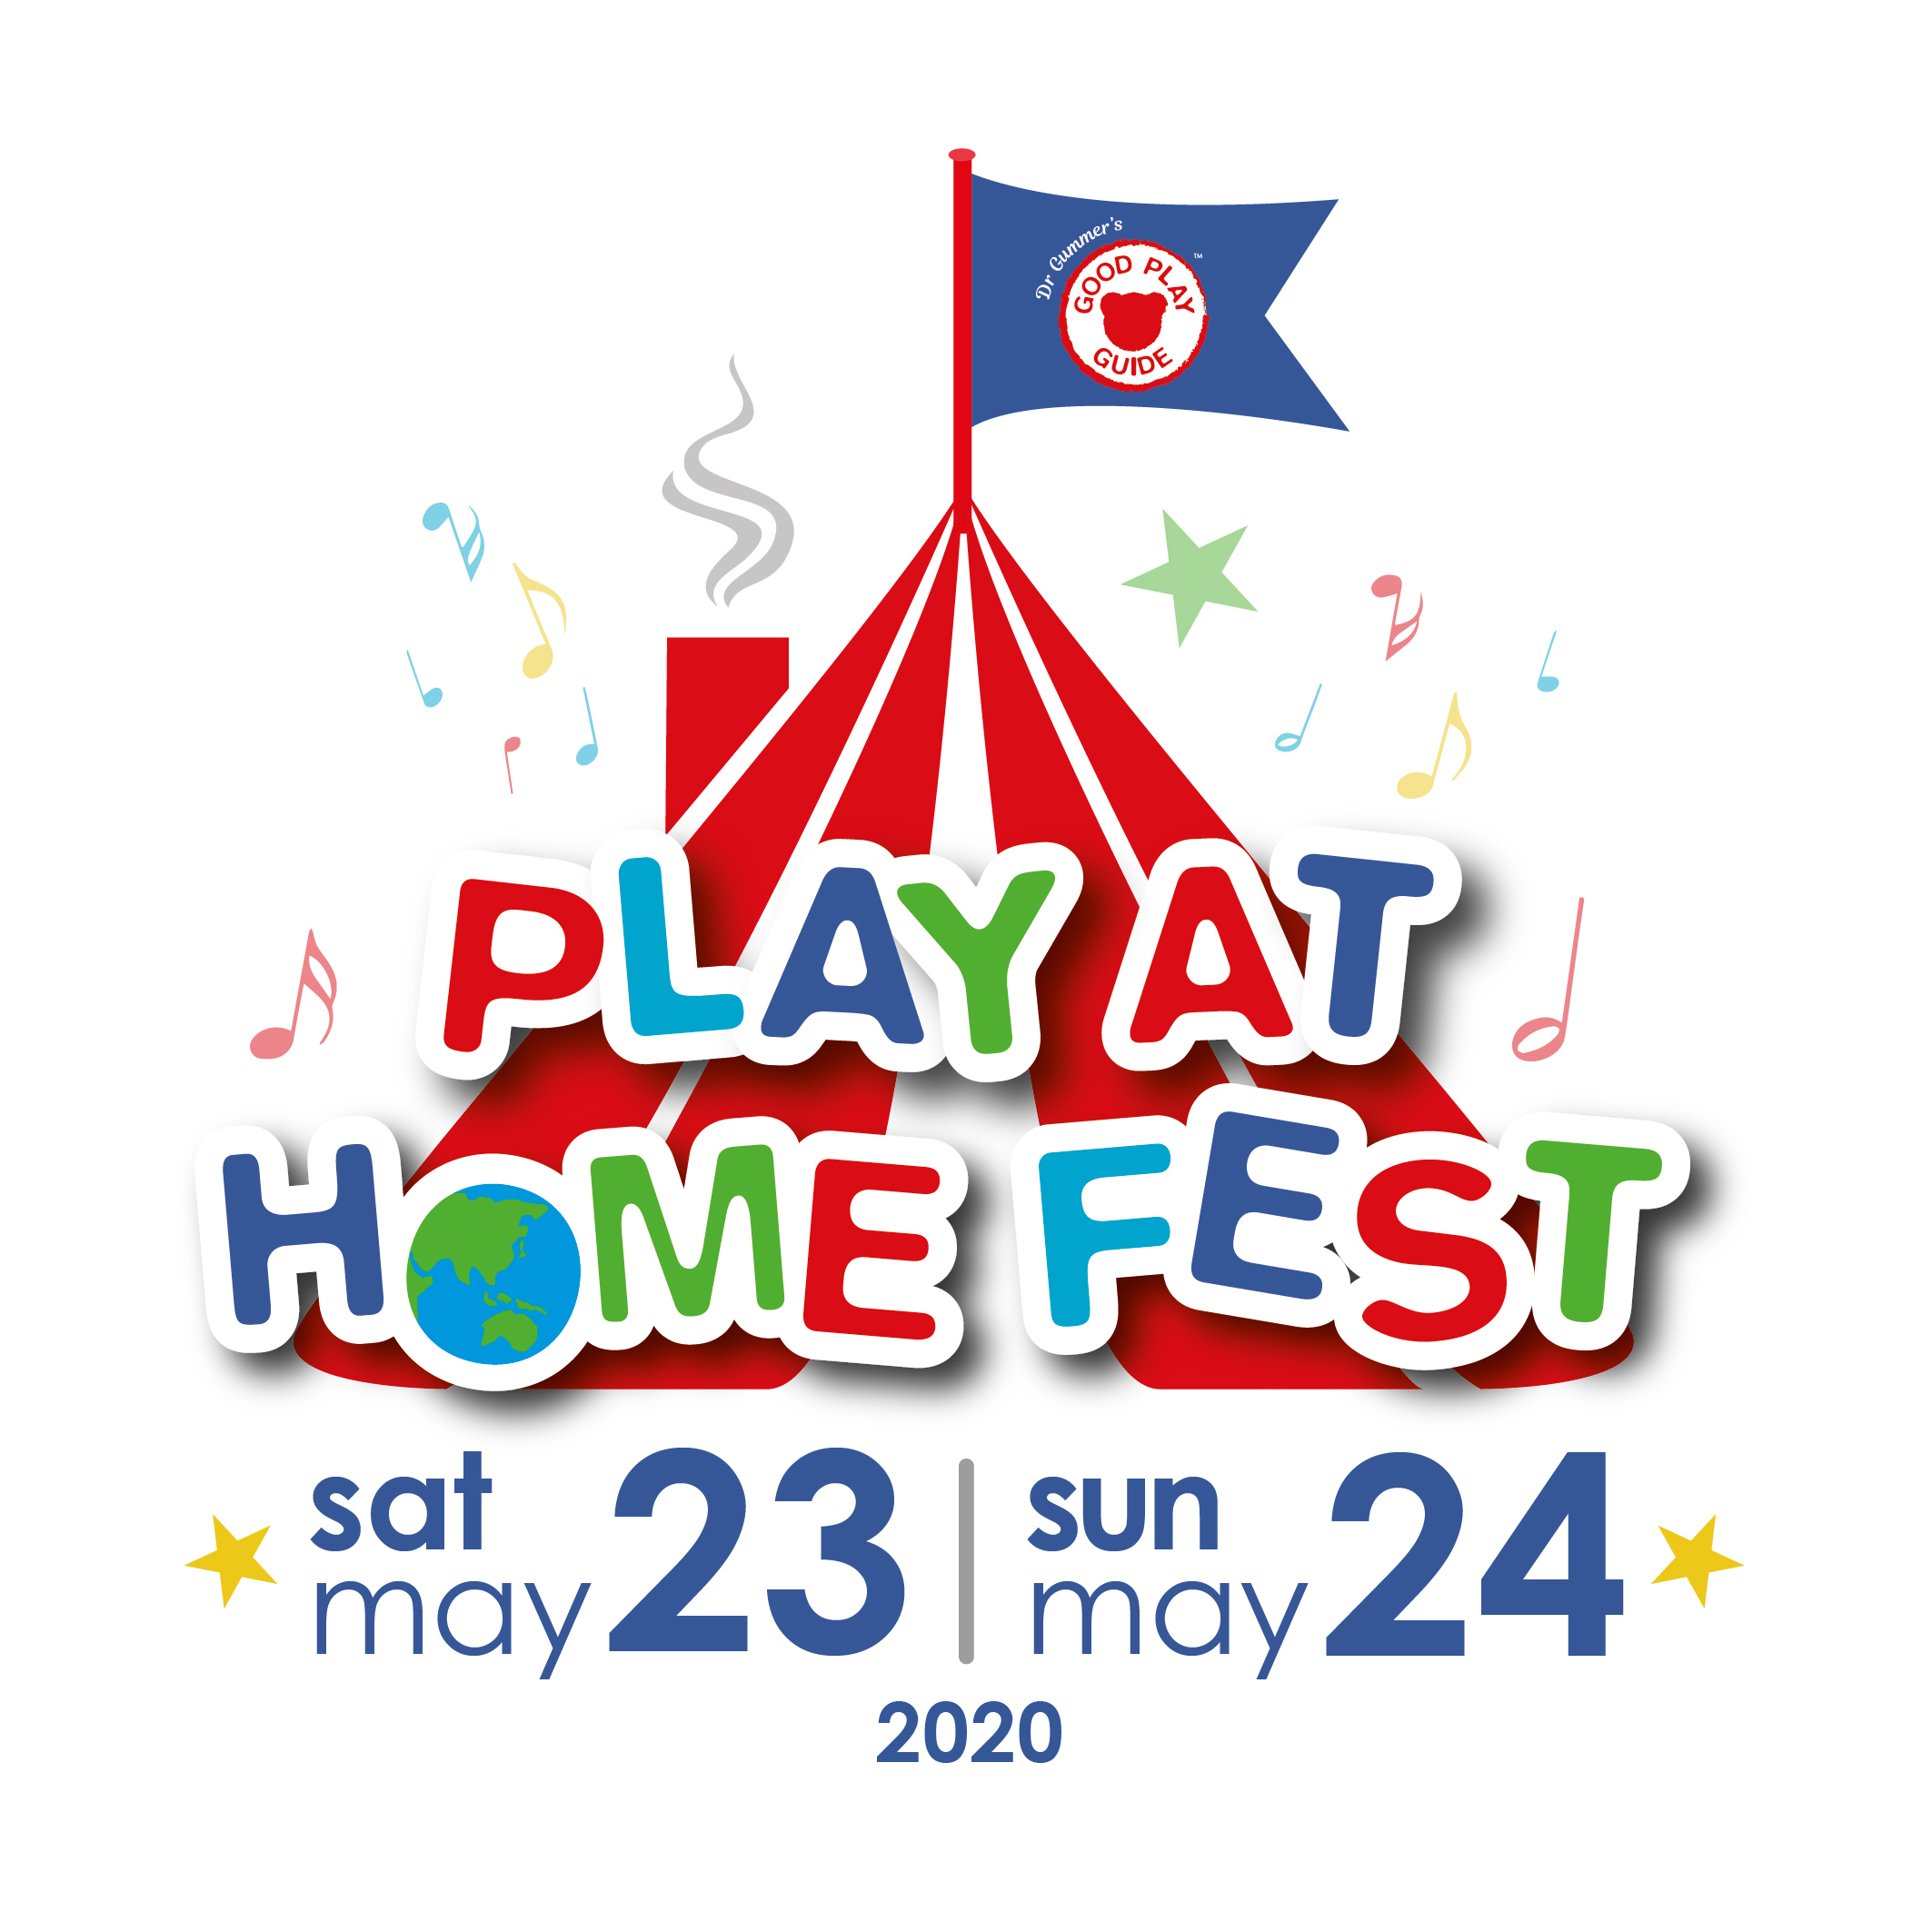 play at home fest 2020